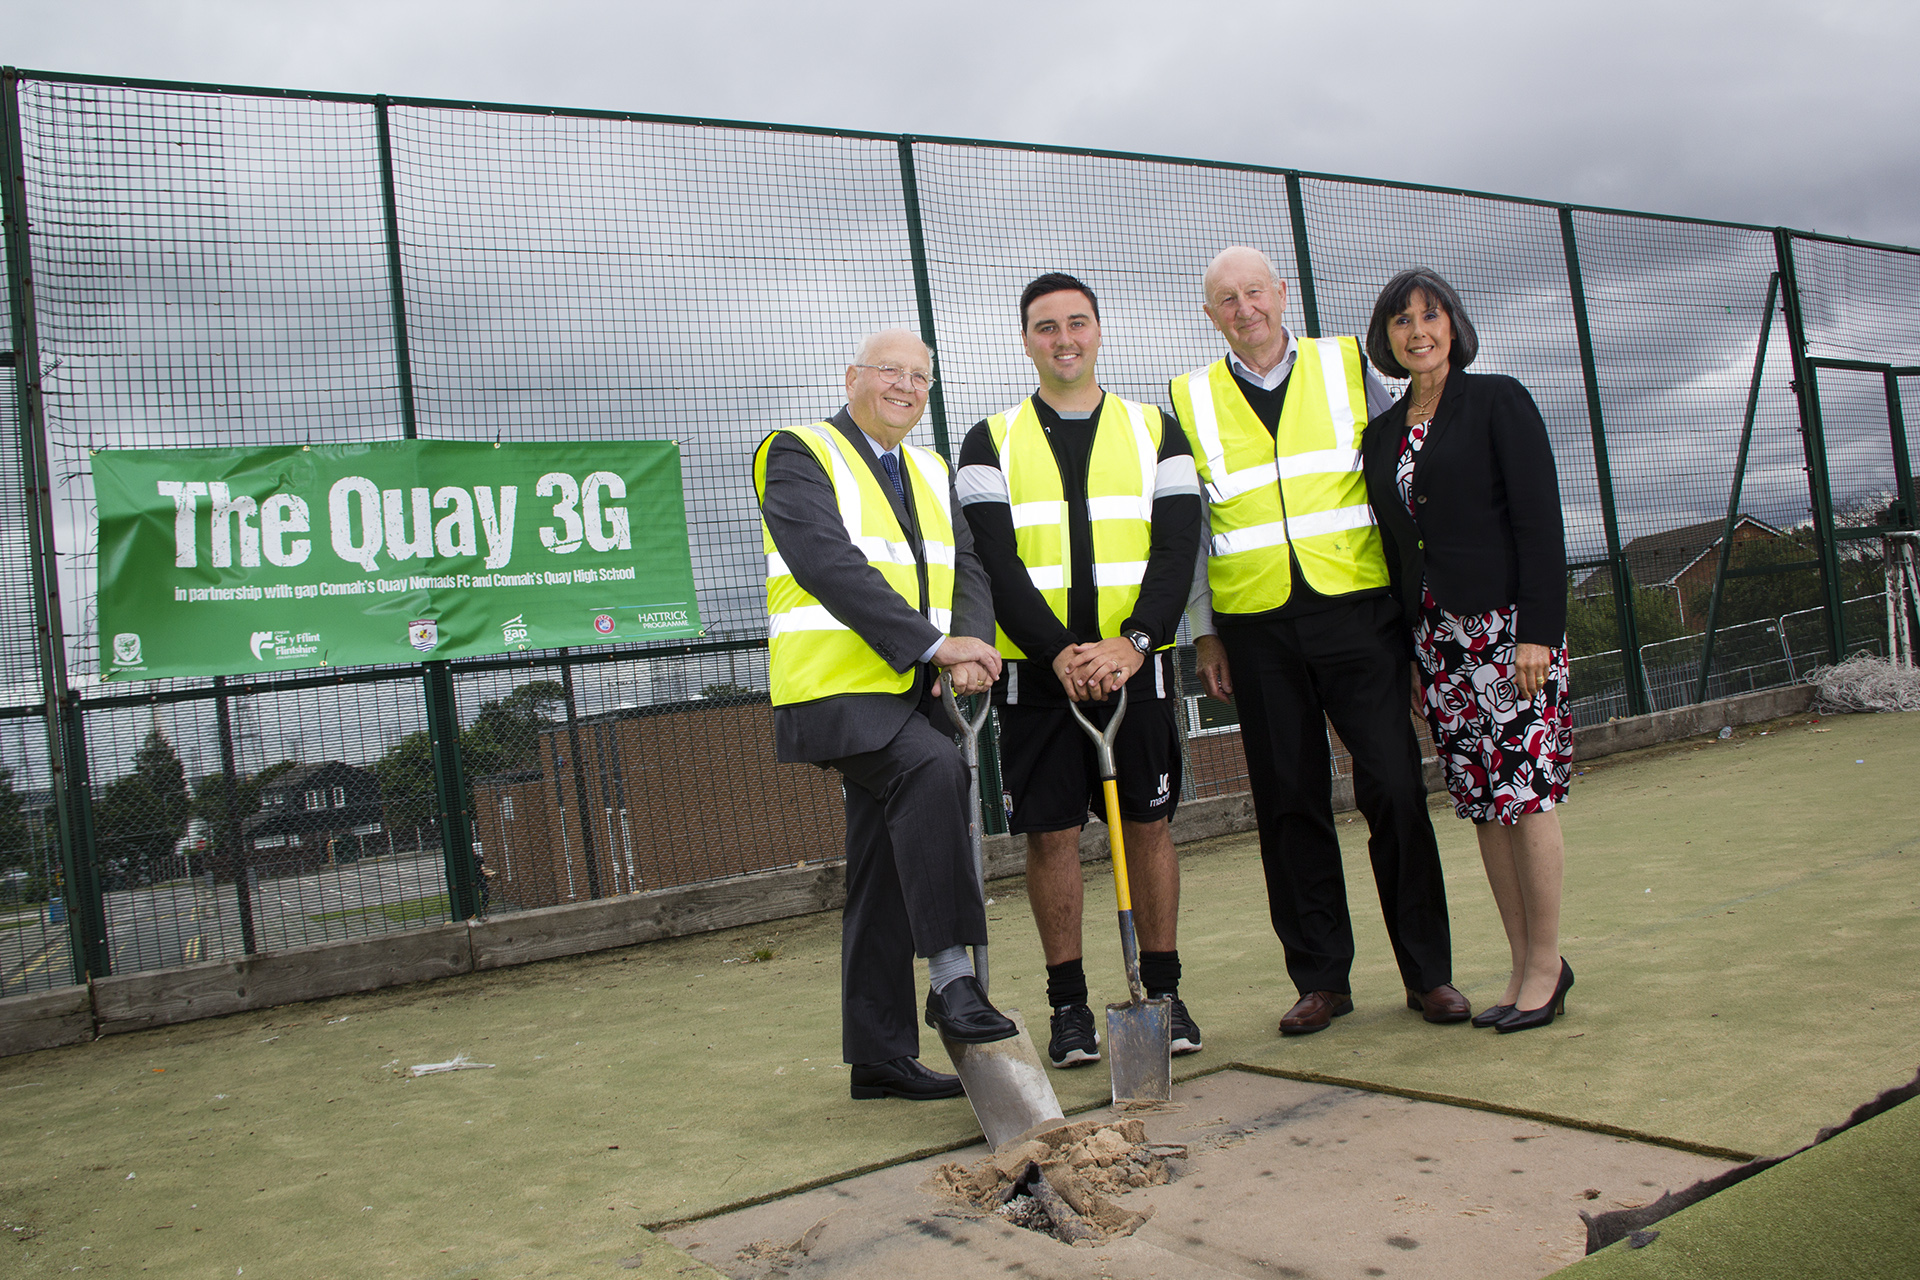 Construction begins at The Quay 3G